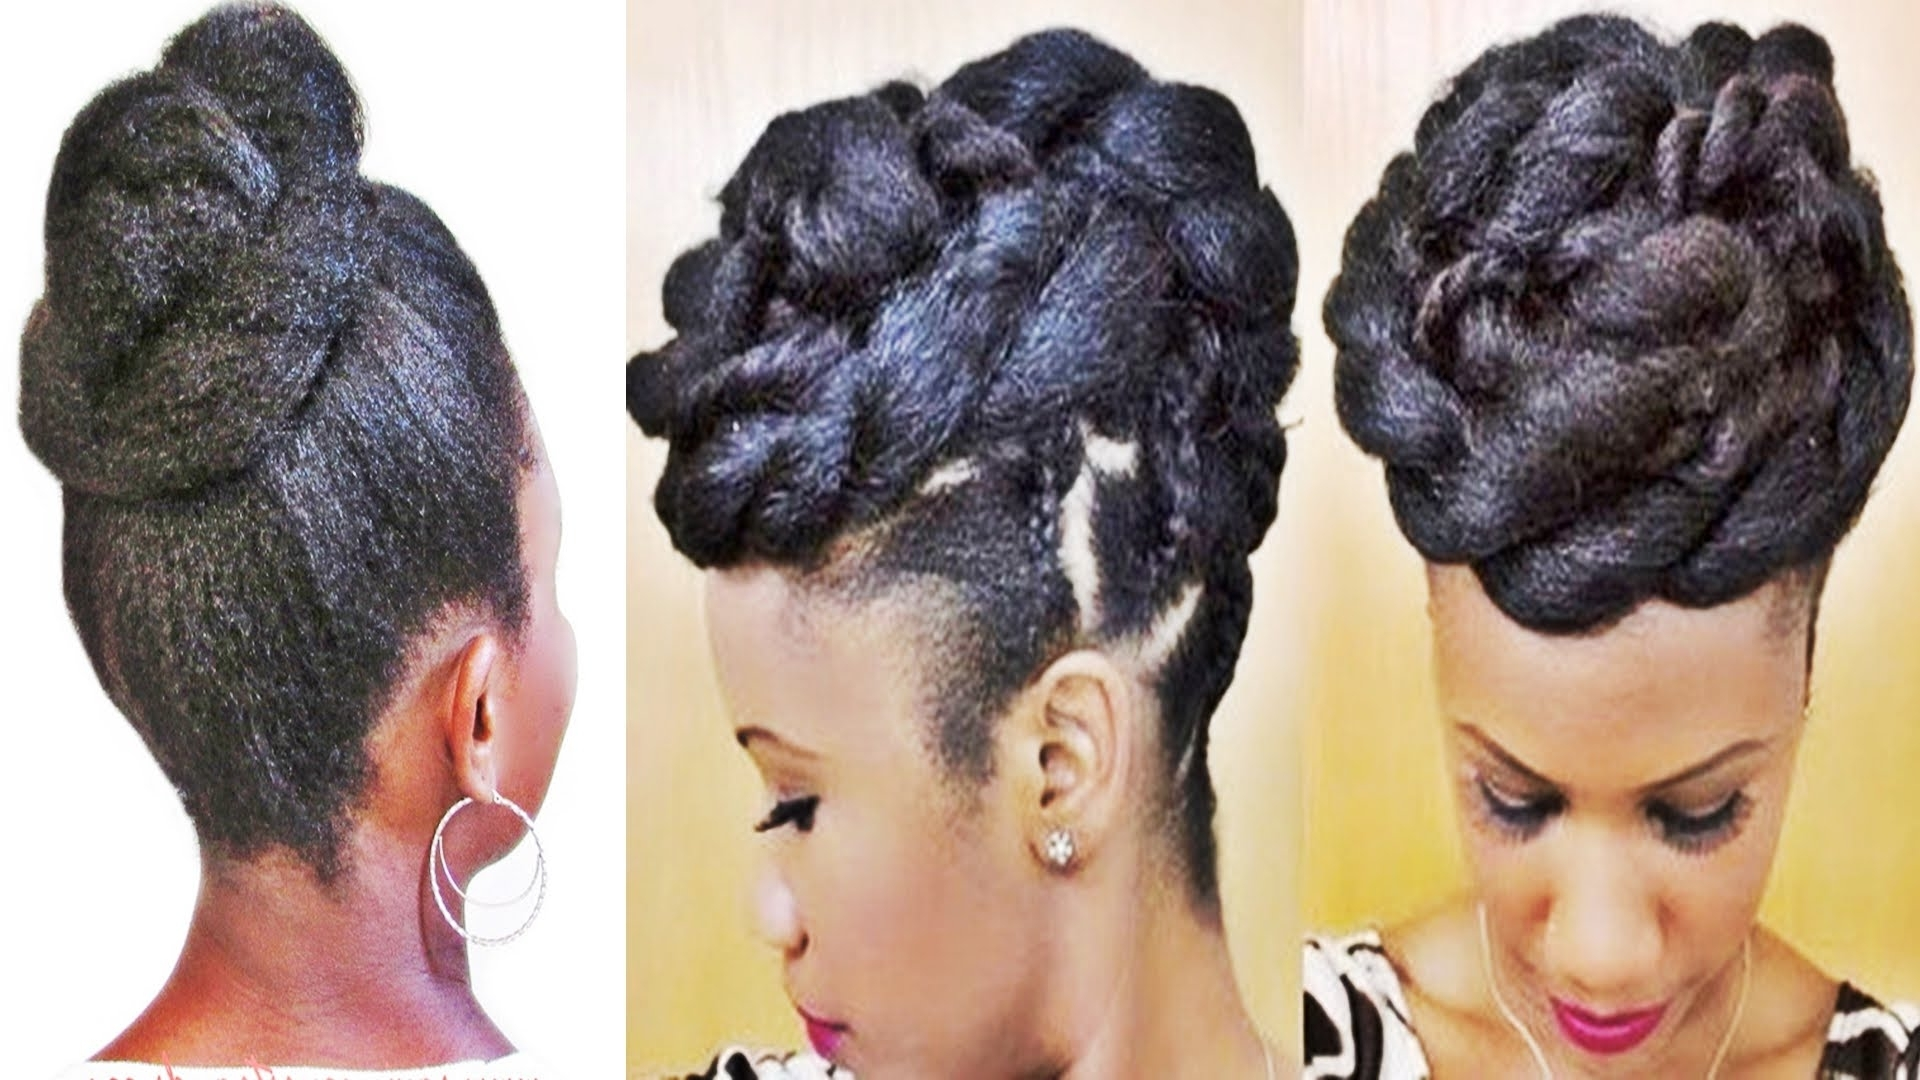 Braids And Twists Updo Hairstyle For Black Women – Youtube Pertaining To Updo Hairstyles With Braiding Hair (View 1 of 15)